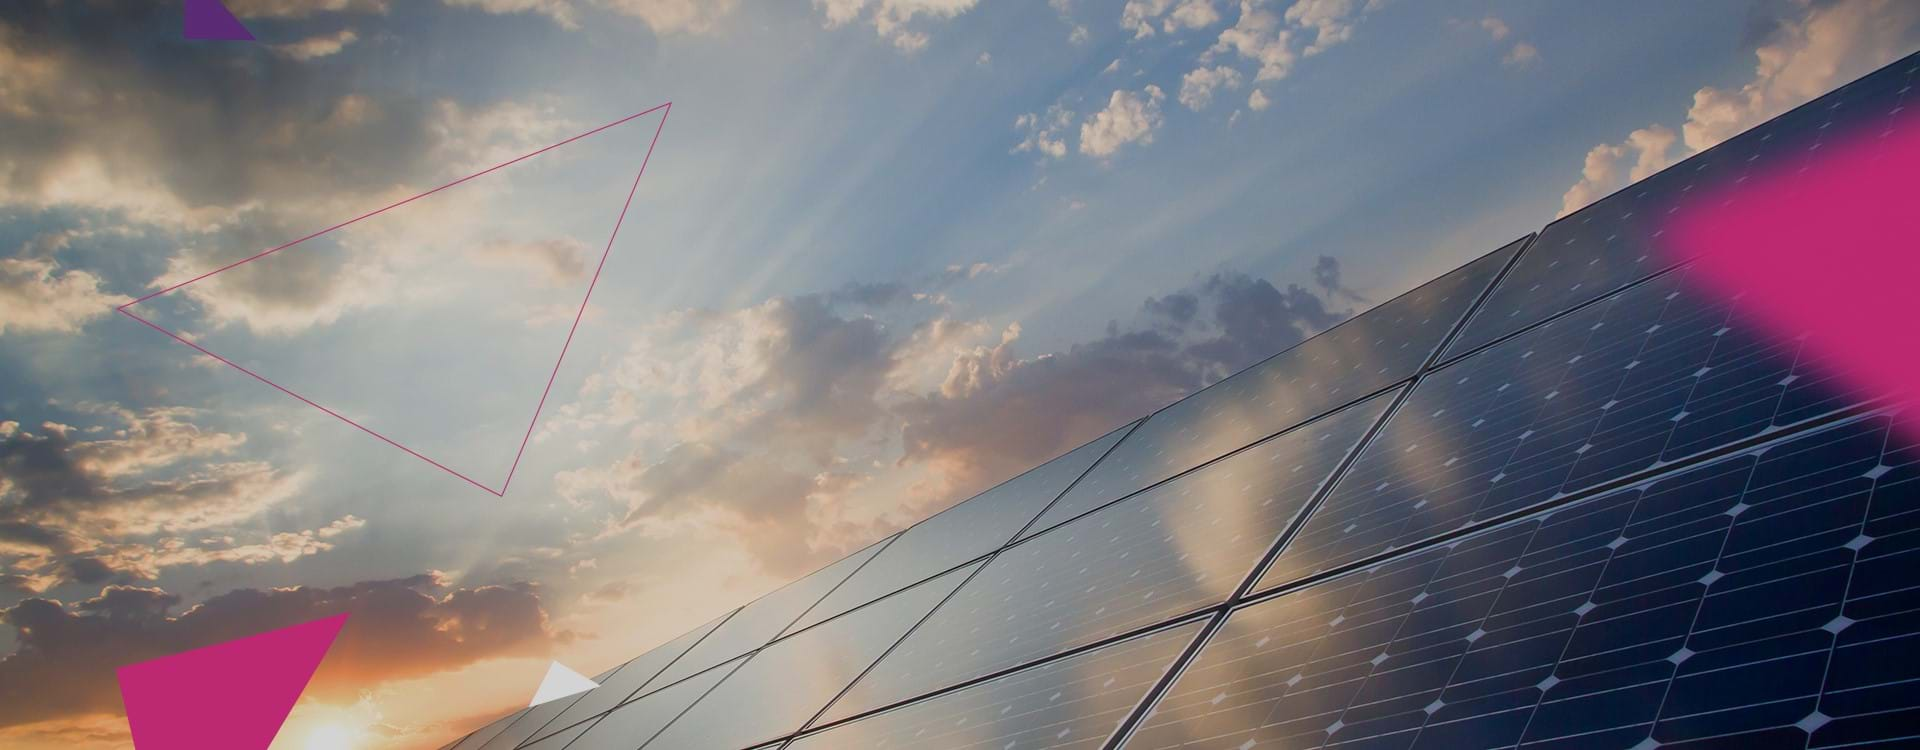 New challenges and opportunities in the changing energy landscape